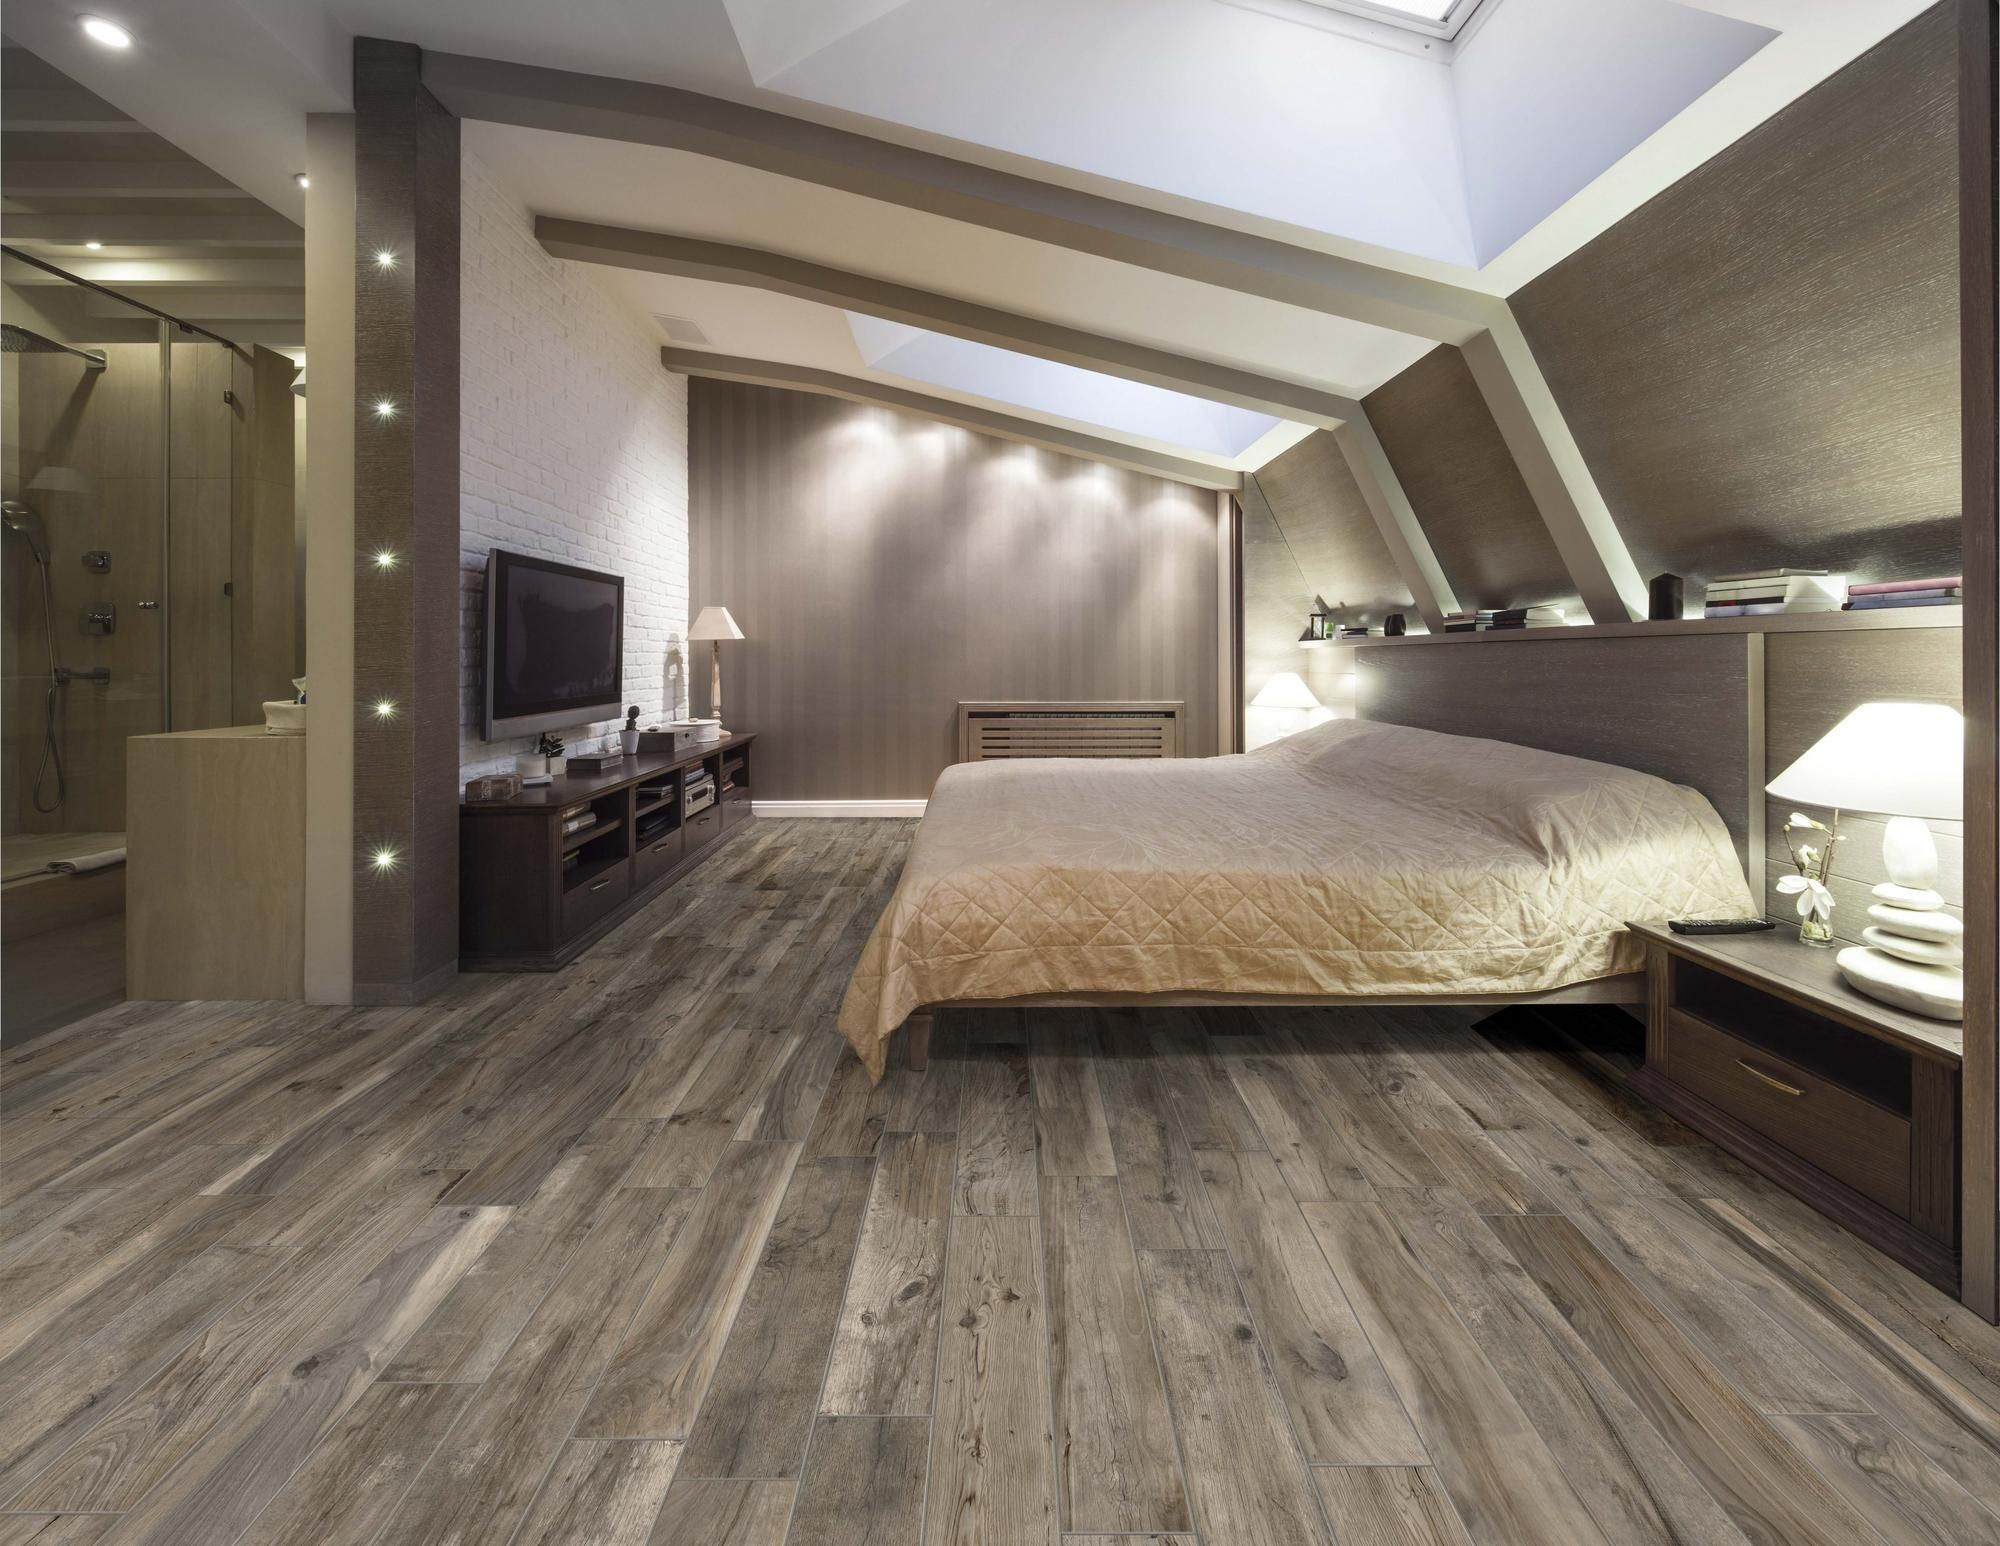 Soft Ash Wood Plank Porcelain Tile Floor Decor Attic Master Bedroom Remodel Bedroom Tile Bedroom